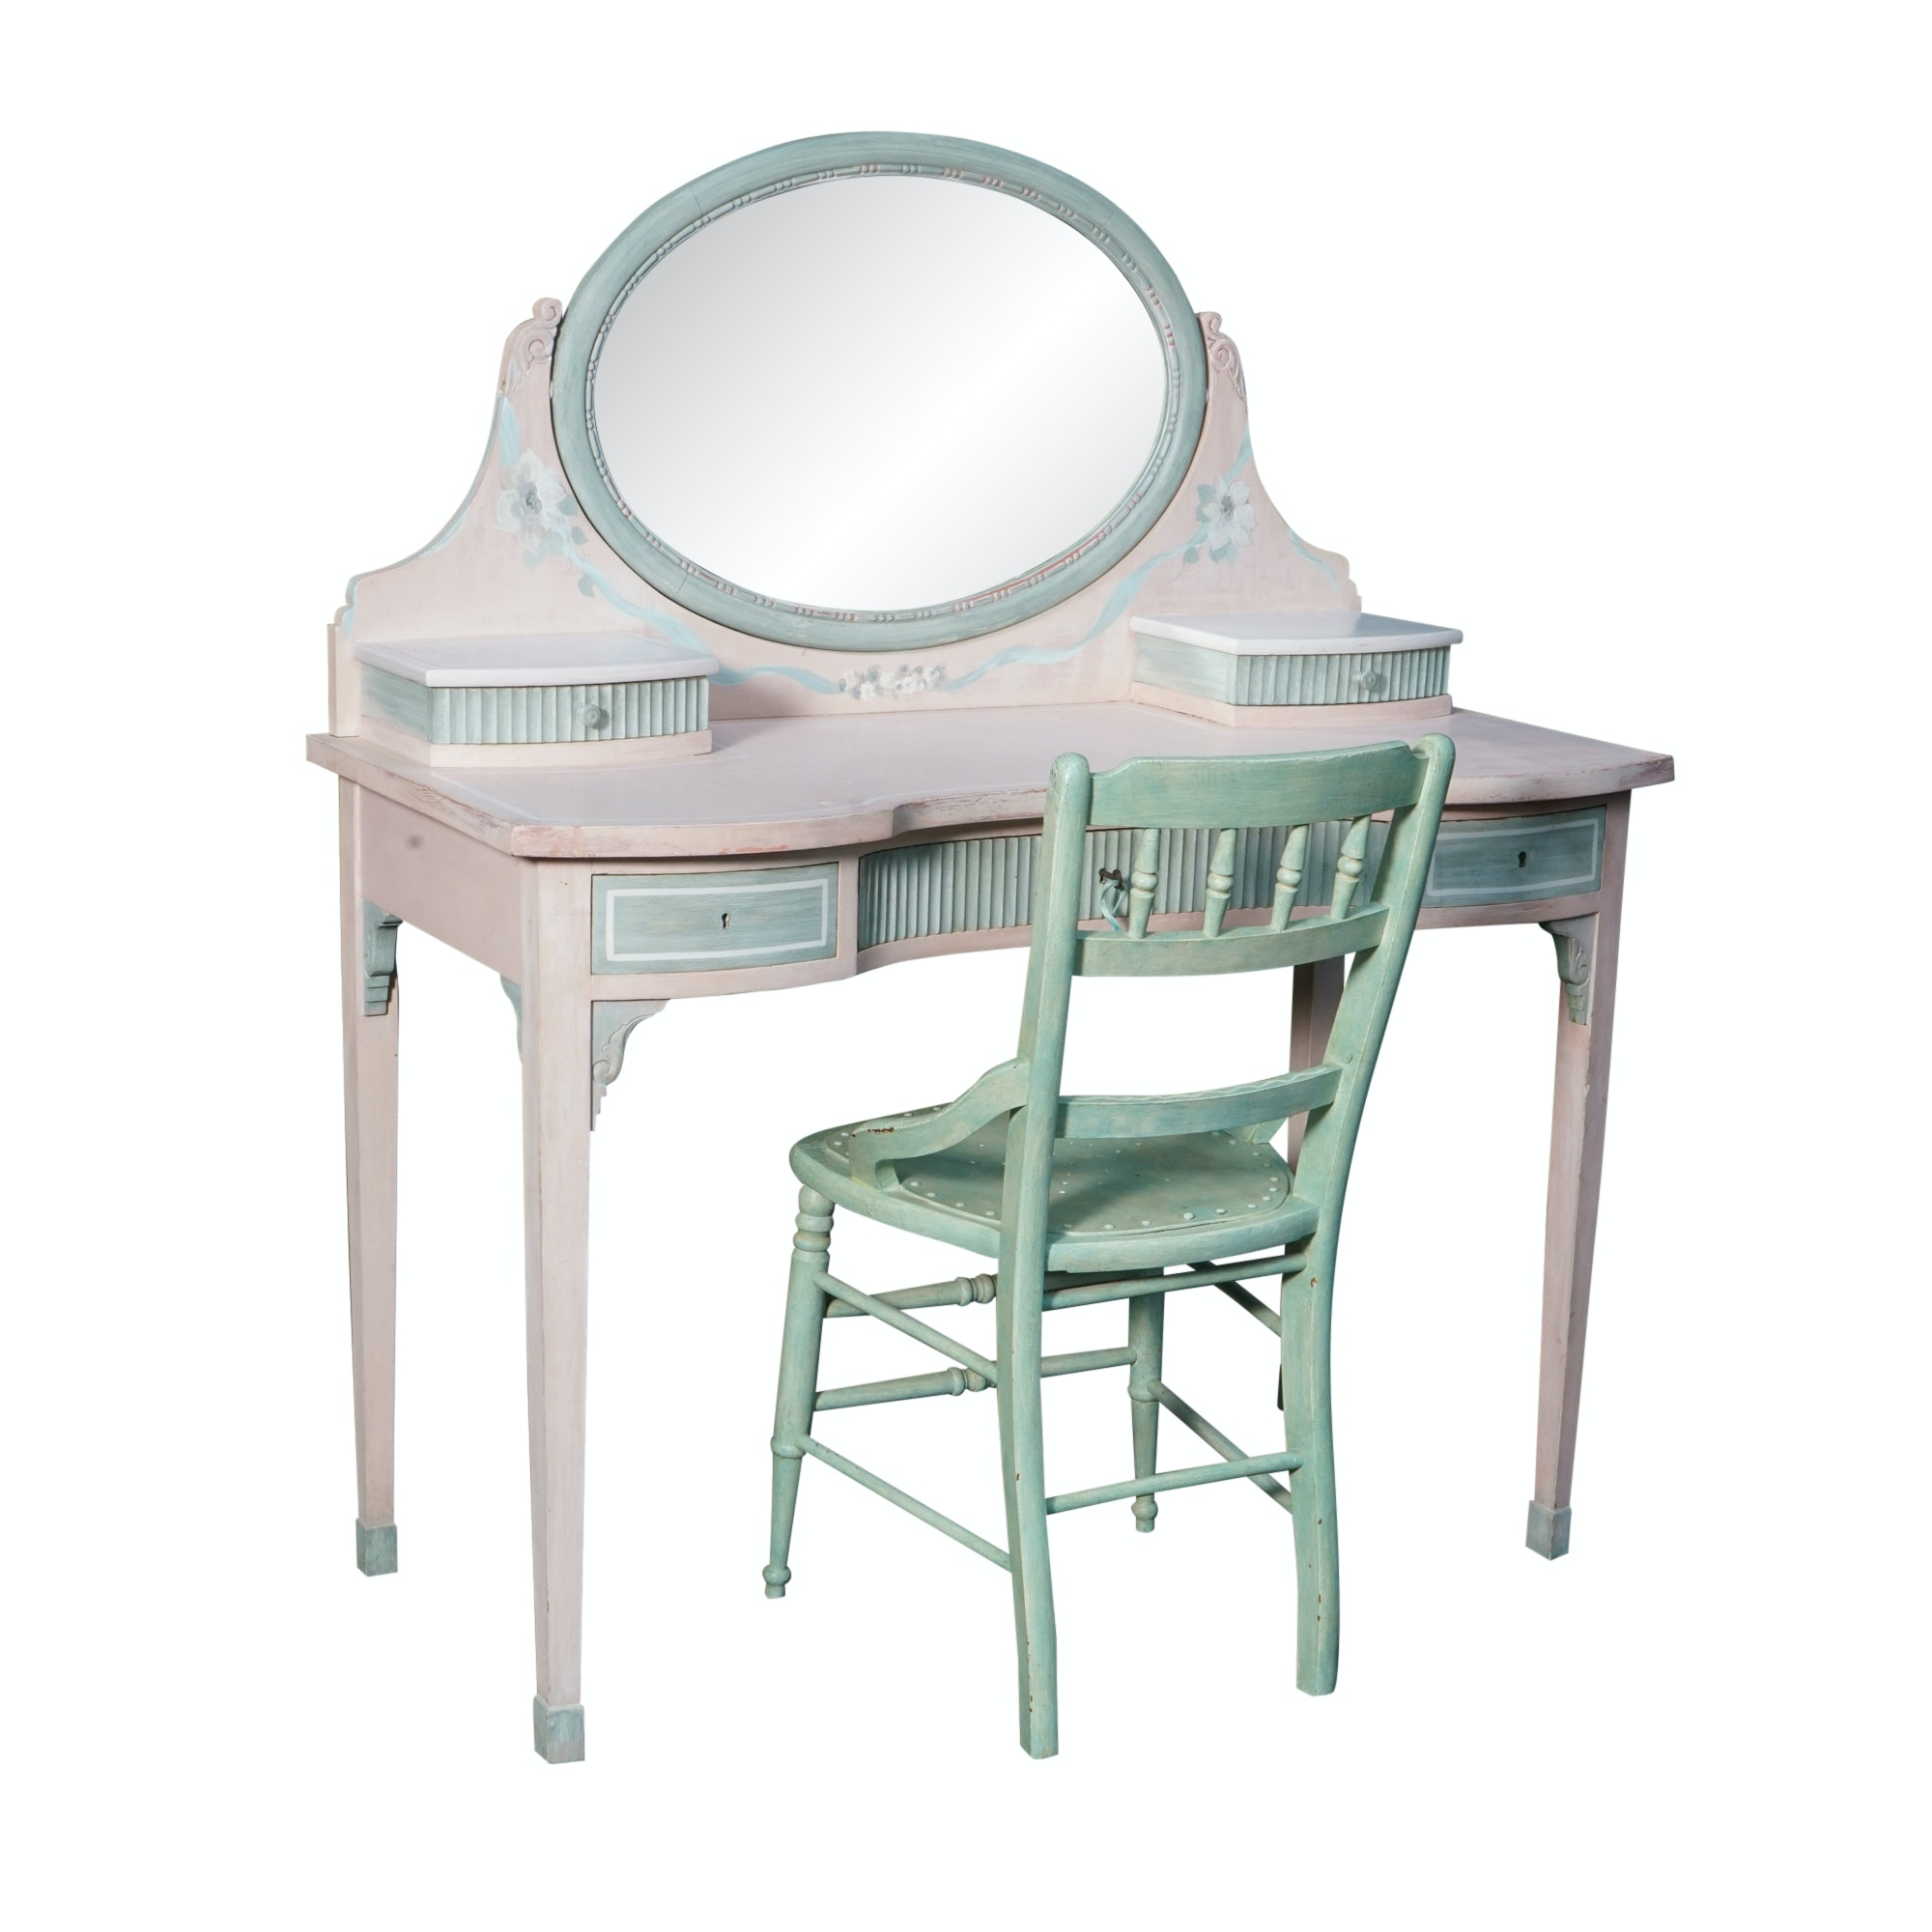 Painted Vanity Table with Chair